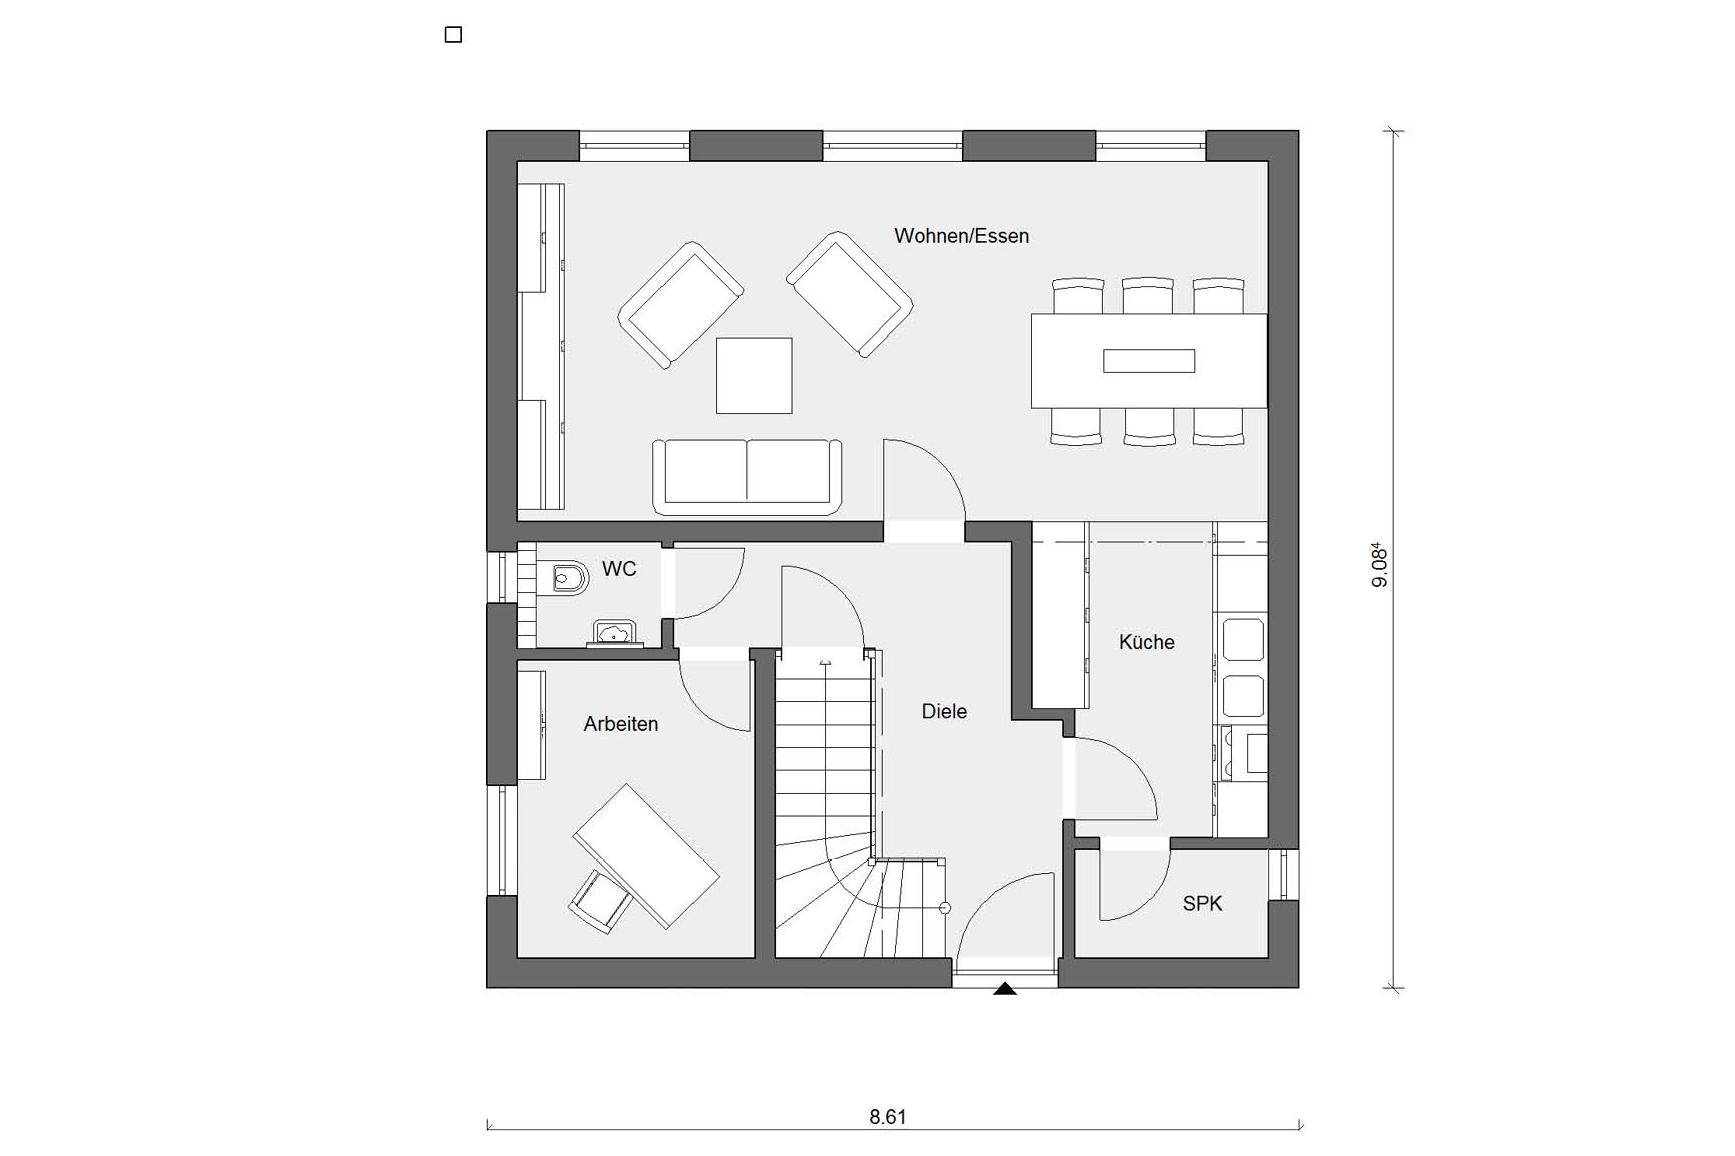 Ground floor layout E 15-128.3 Houses with offset pent roof